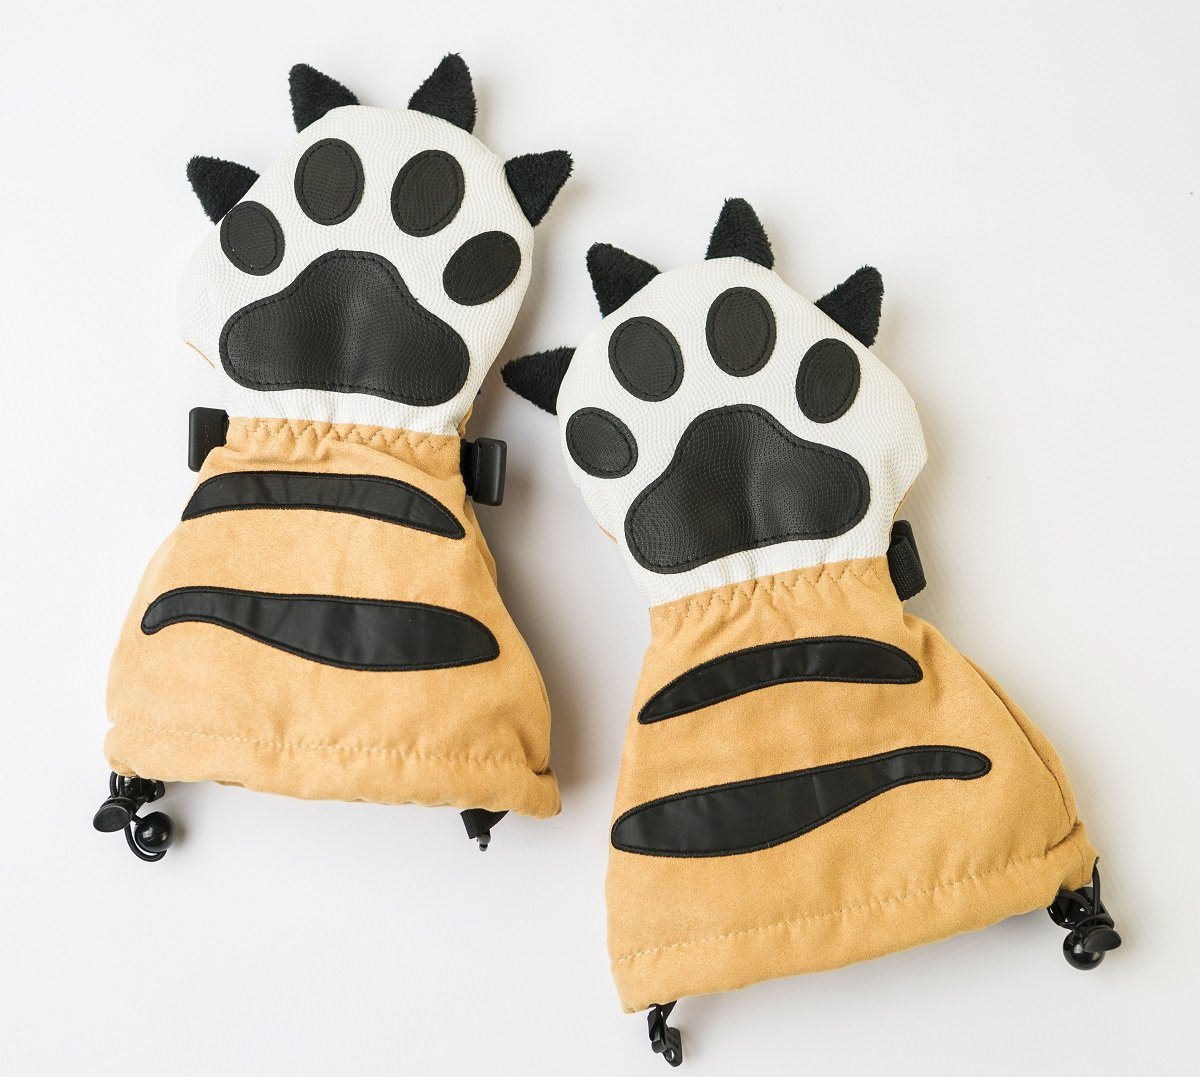 Toddler Gloves Sledding | Perfect for Snow Skiing Waterproof Kids Mittens Stay on Tiger Paw Mittyz Easy on Veyo Kids and Winter Play